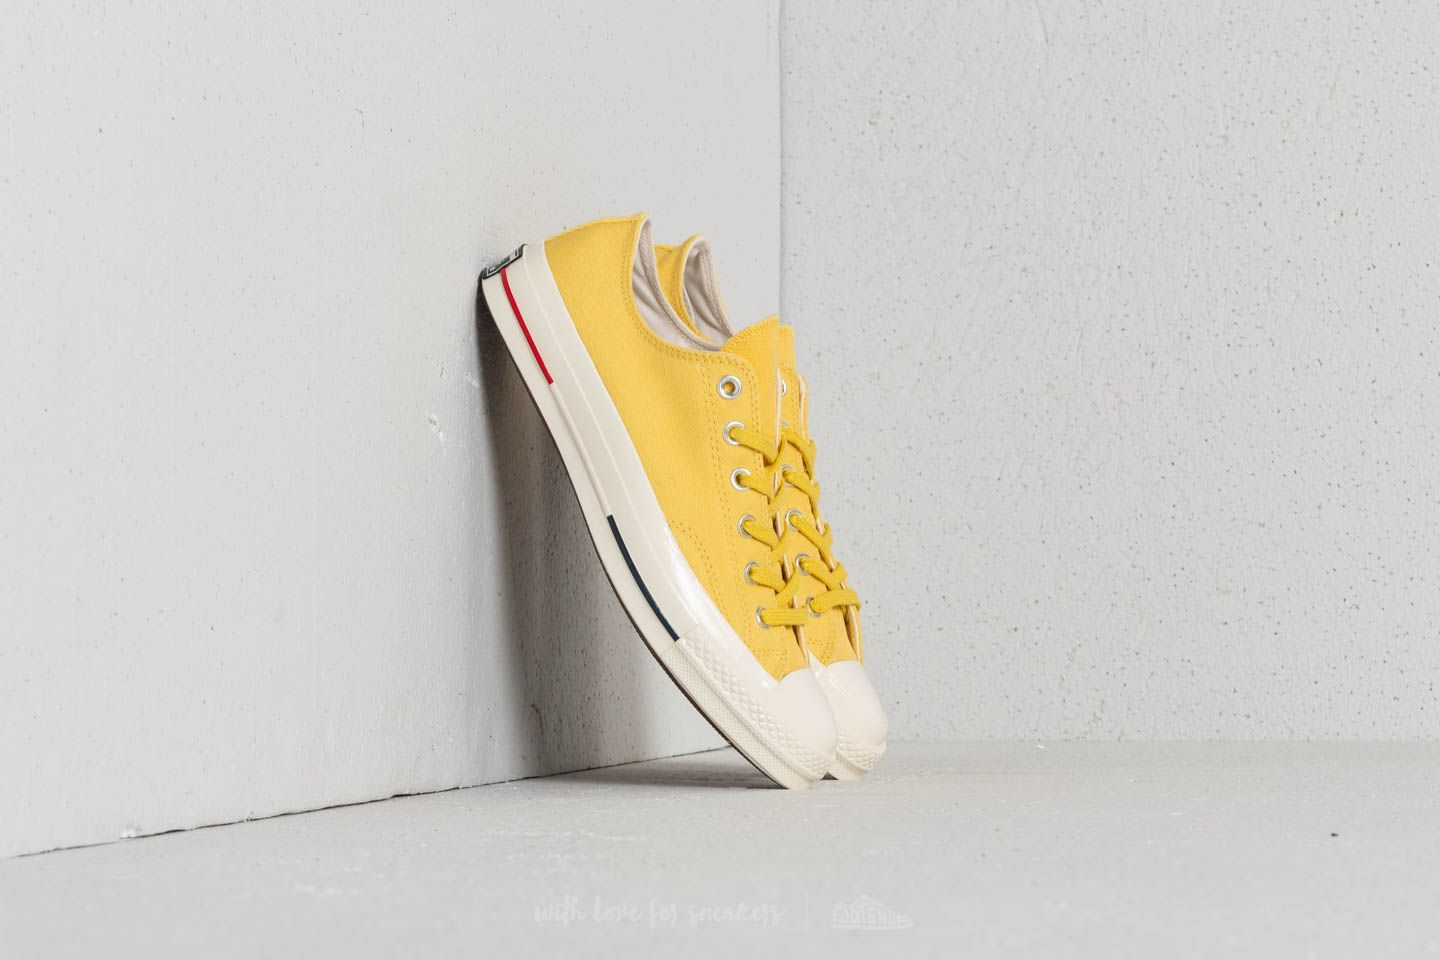 5339e8d45055 Converse Chuck Taylor All Star 70 Ox Desert Gold  Navy  Gym Red ...